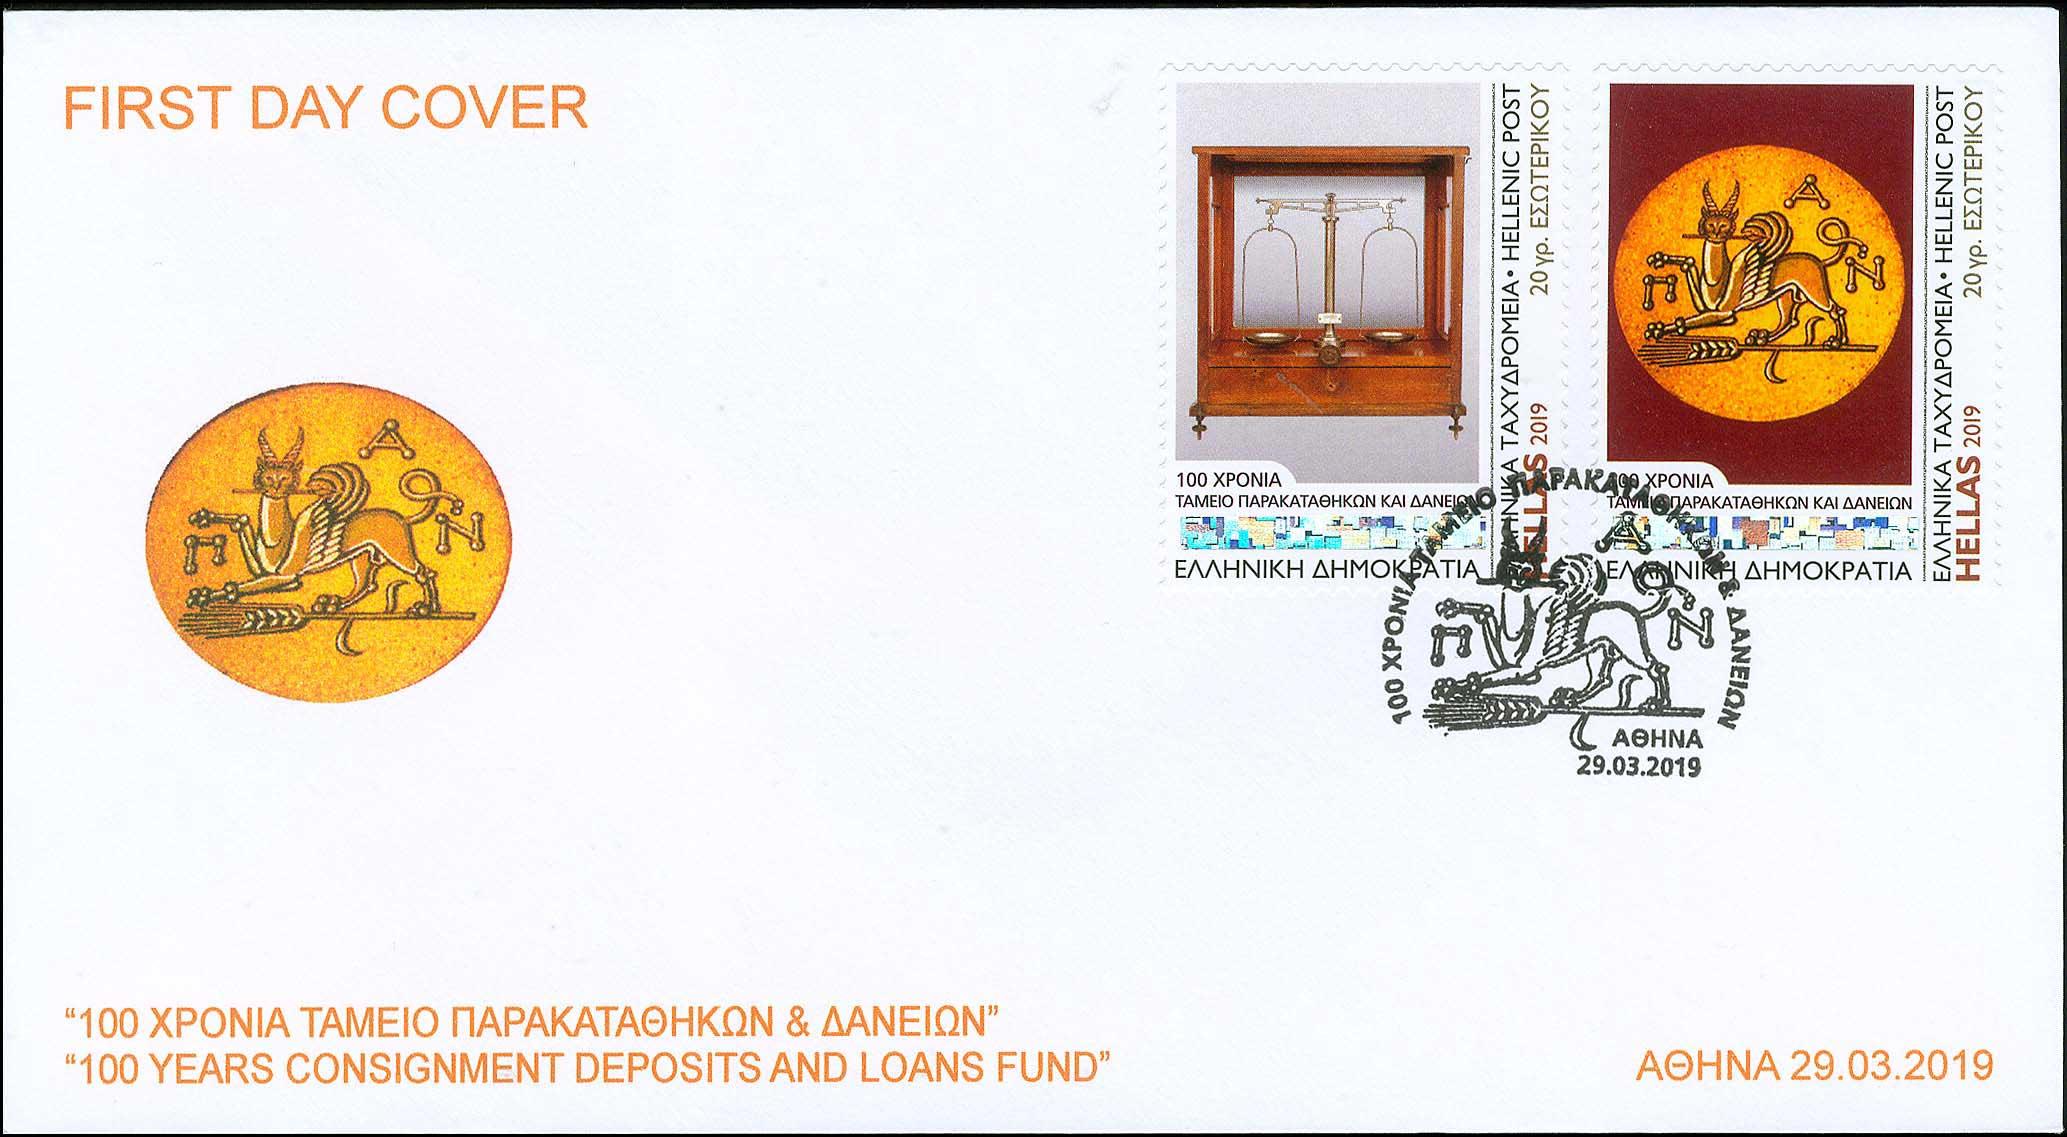 Lot 653 - -  FIRST DAY COVER First day cover -  A. Karamitsos Public Auction 668 General Philatelic Auction